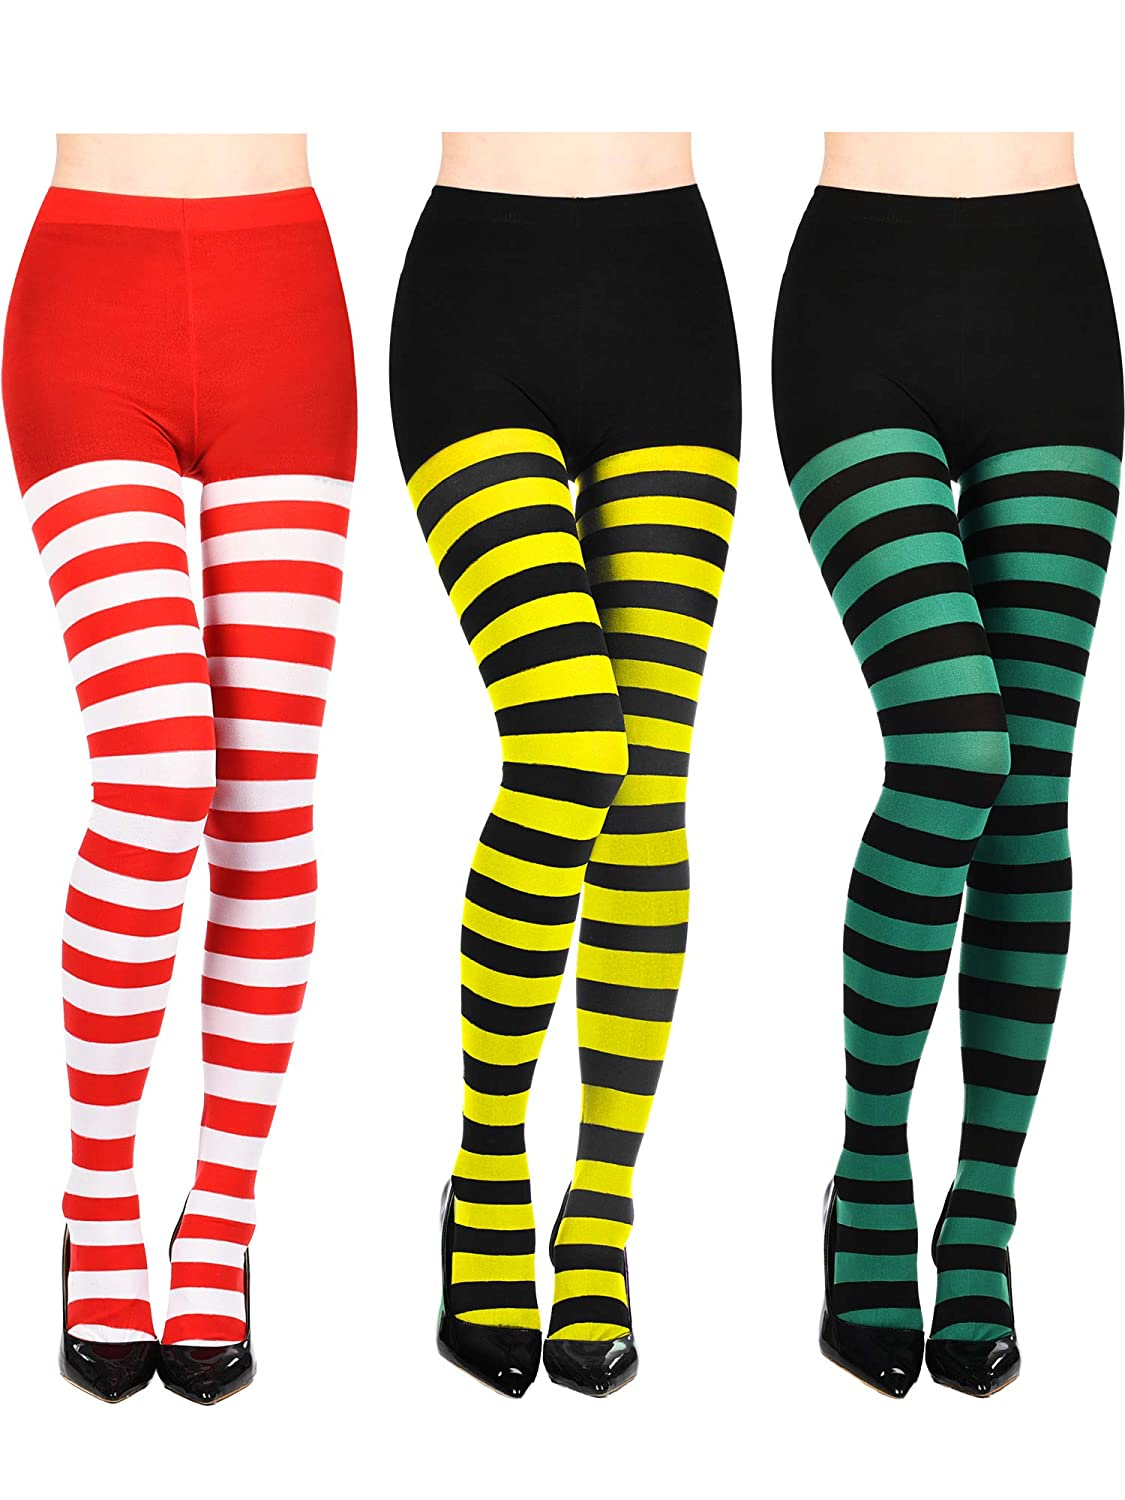 Bememo 3 Pairs Christmas Striped Tights Thigh High for Costume Cosplay Supplies